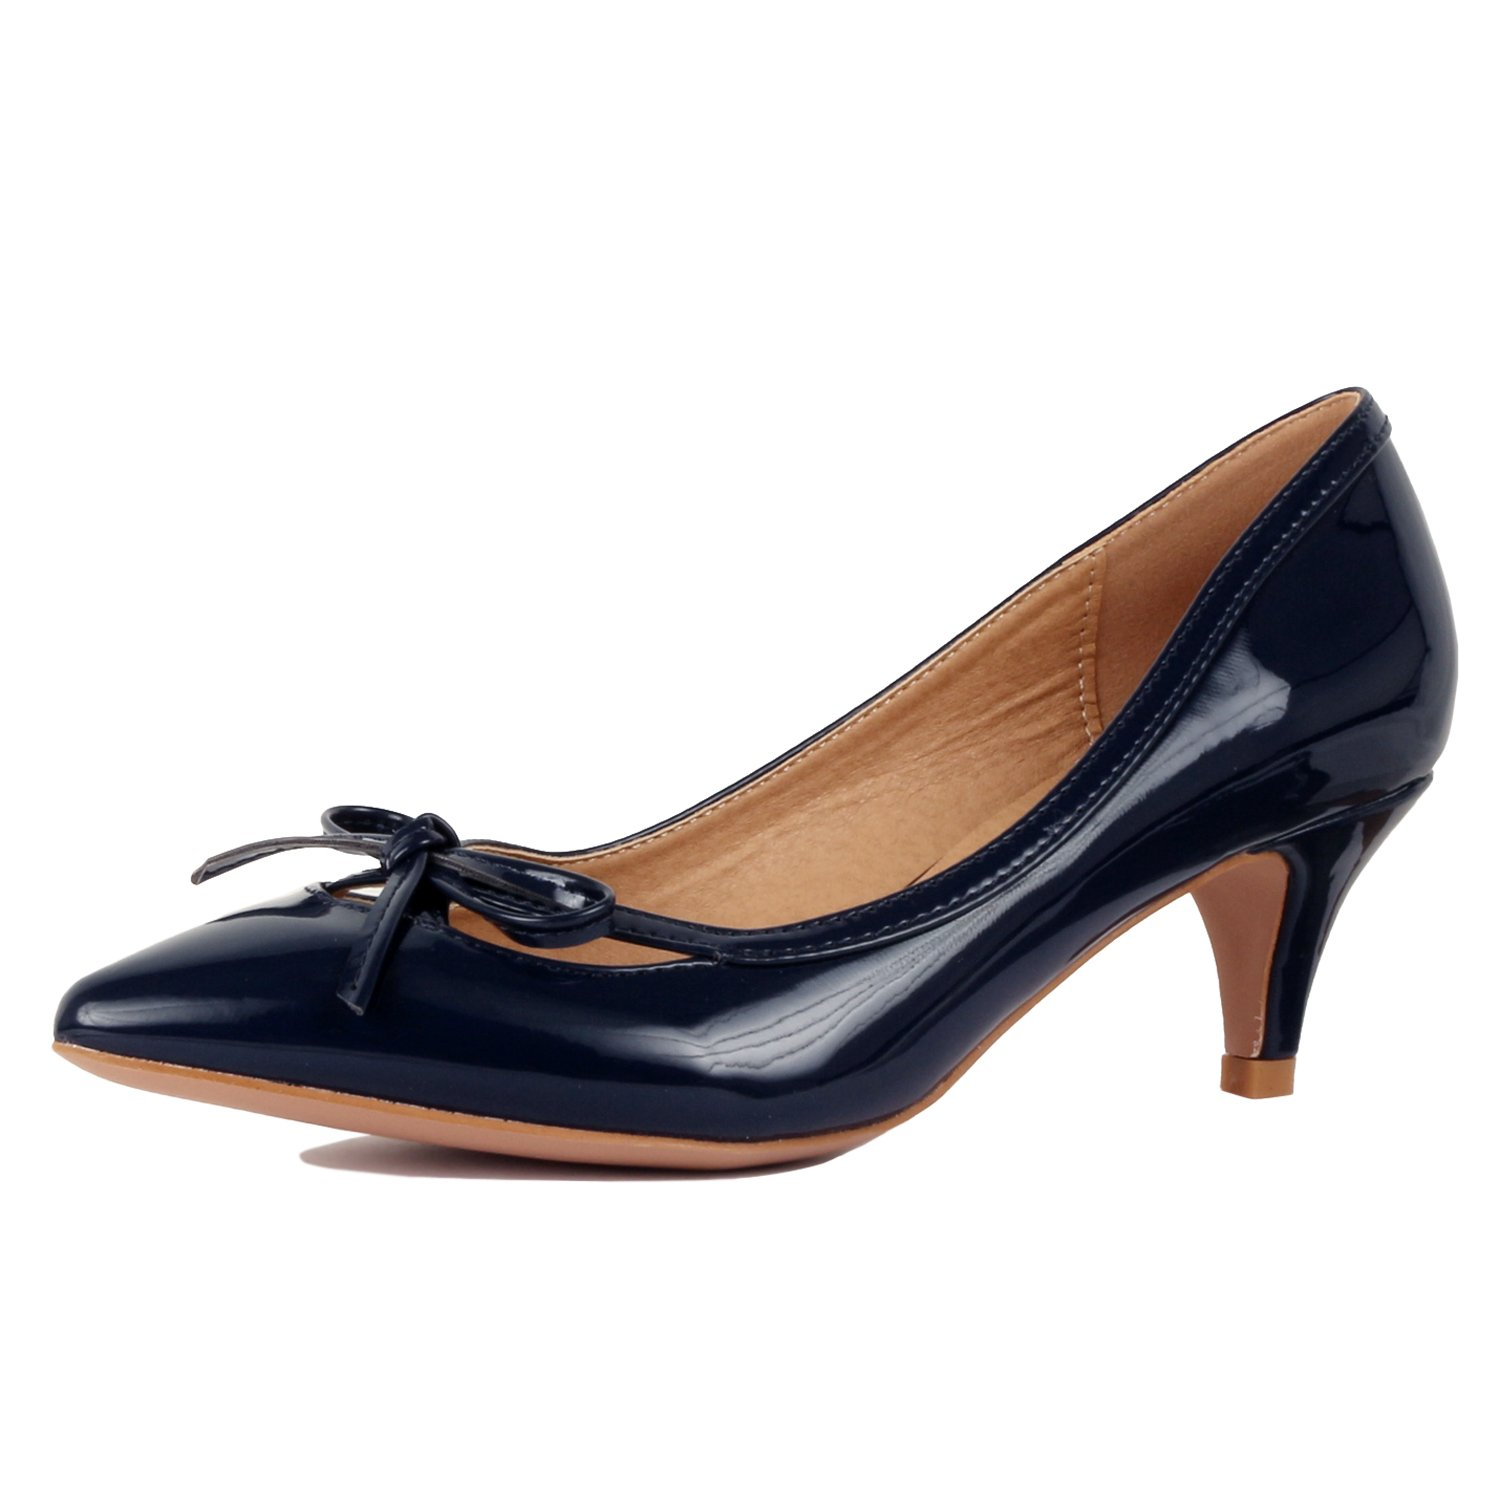 Guilty Shoes - Womens Classic Pointy Toe Low Kitten Heel Office Dress Slip On Fashion Pump - 22 Colors (10 B(M) US, 17-Navy-Patent)